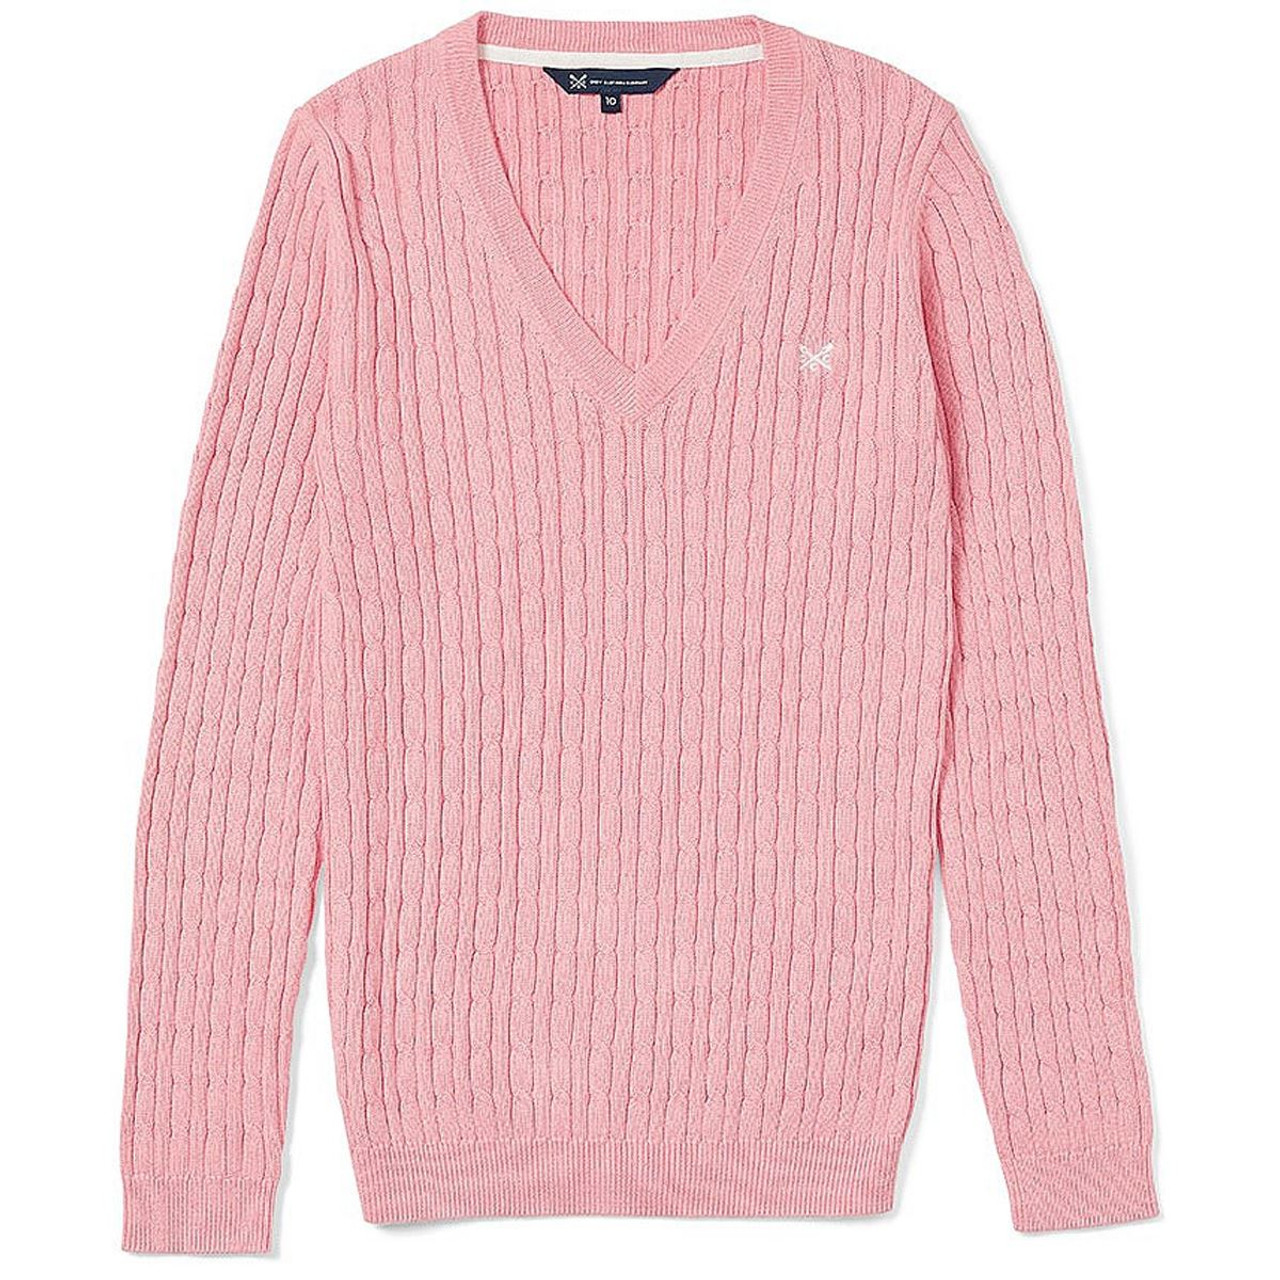 Crew Clothing Womens Heritage V Cable Knit